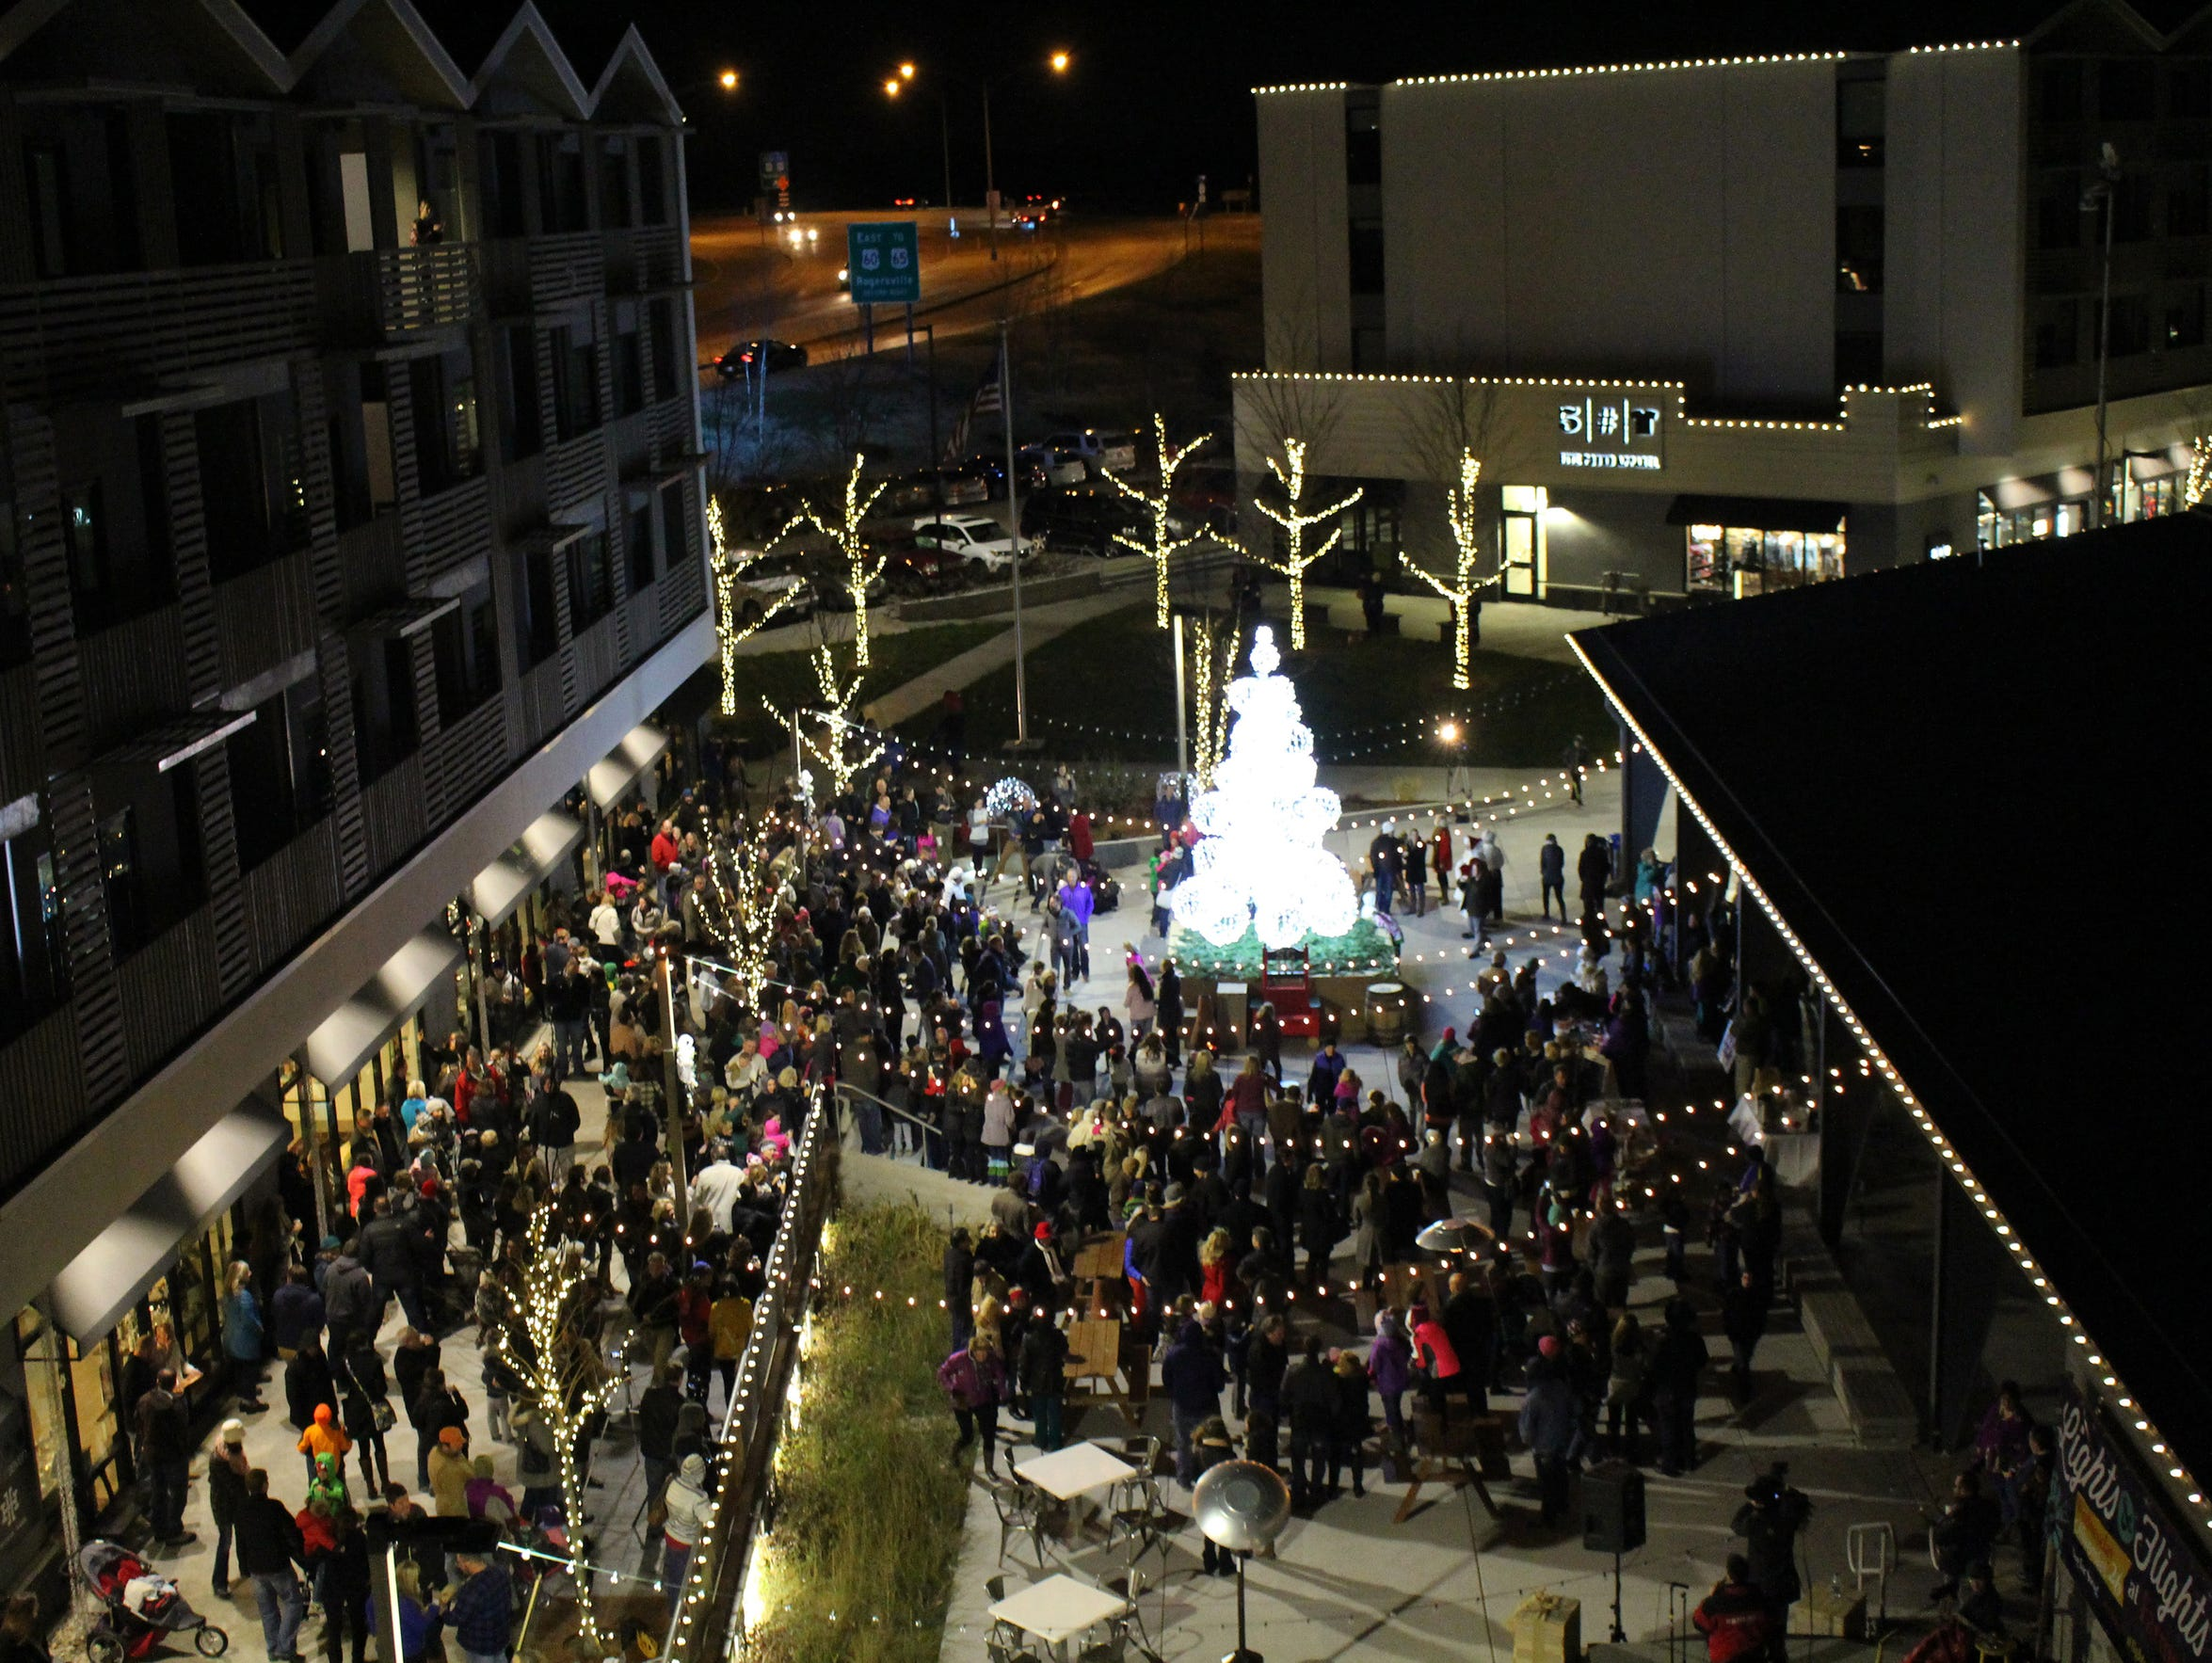 An aerial view of the 2014 Lights and Flights event